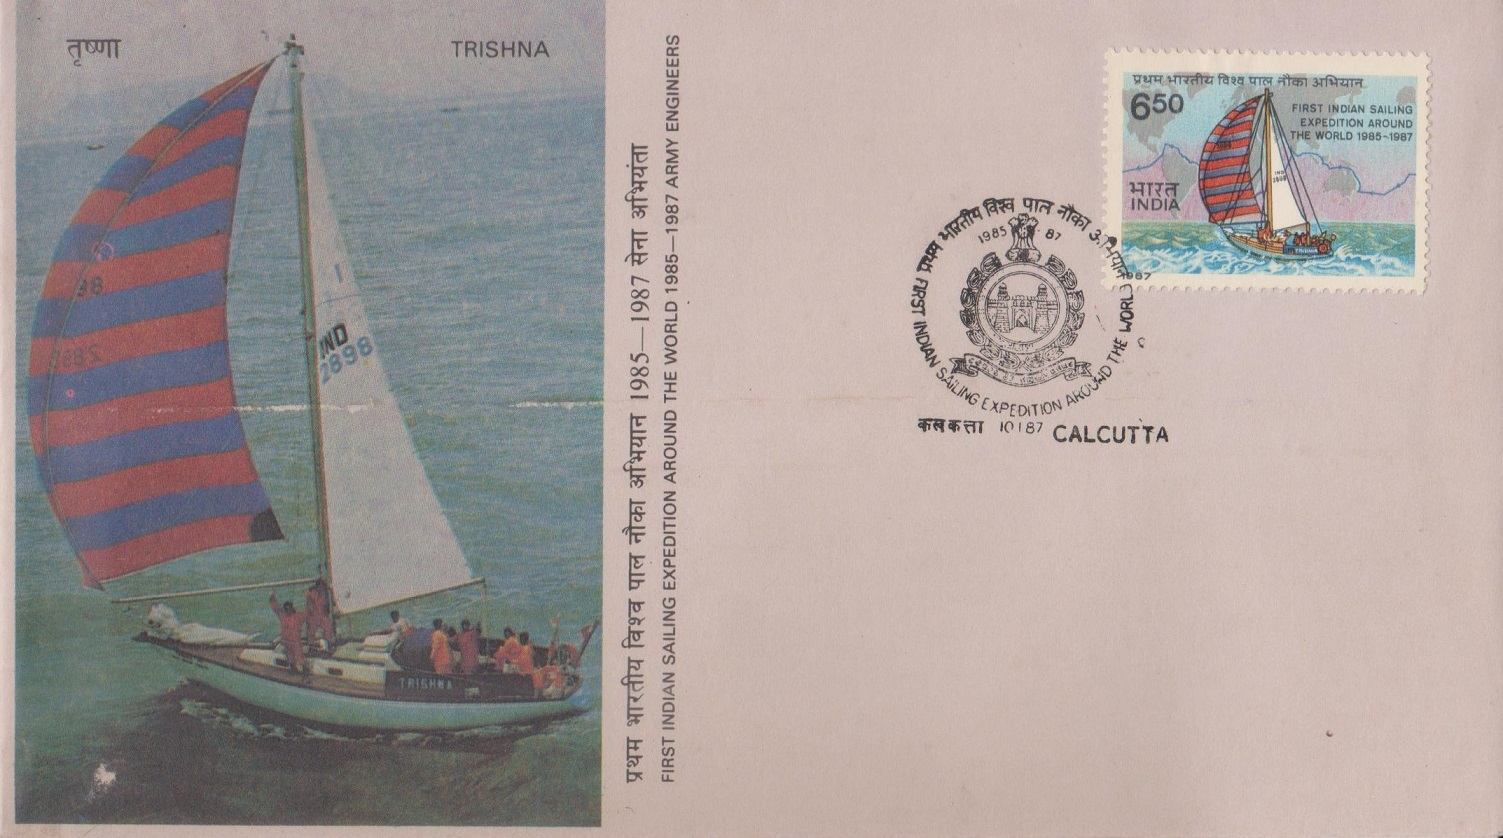 Trishna (yacht) : Corps of Engineers (Indian Army)